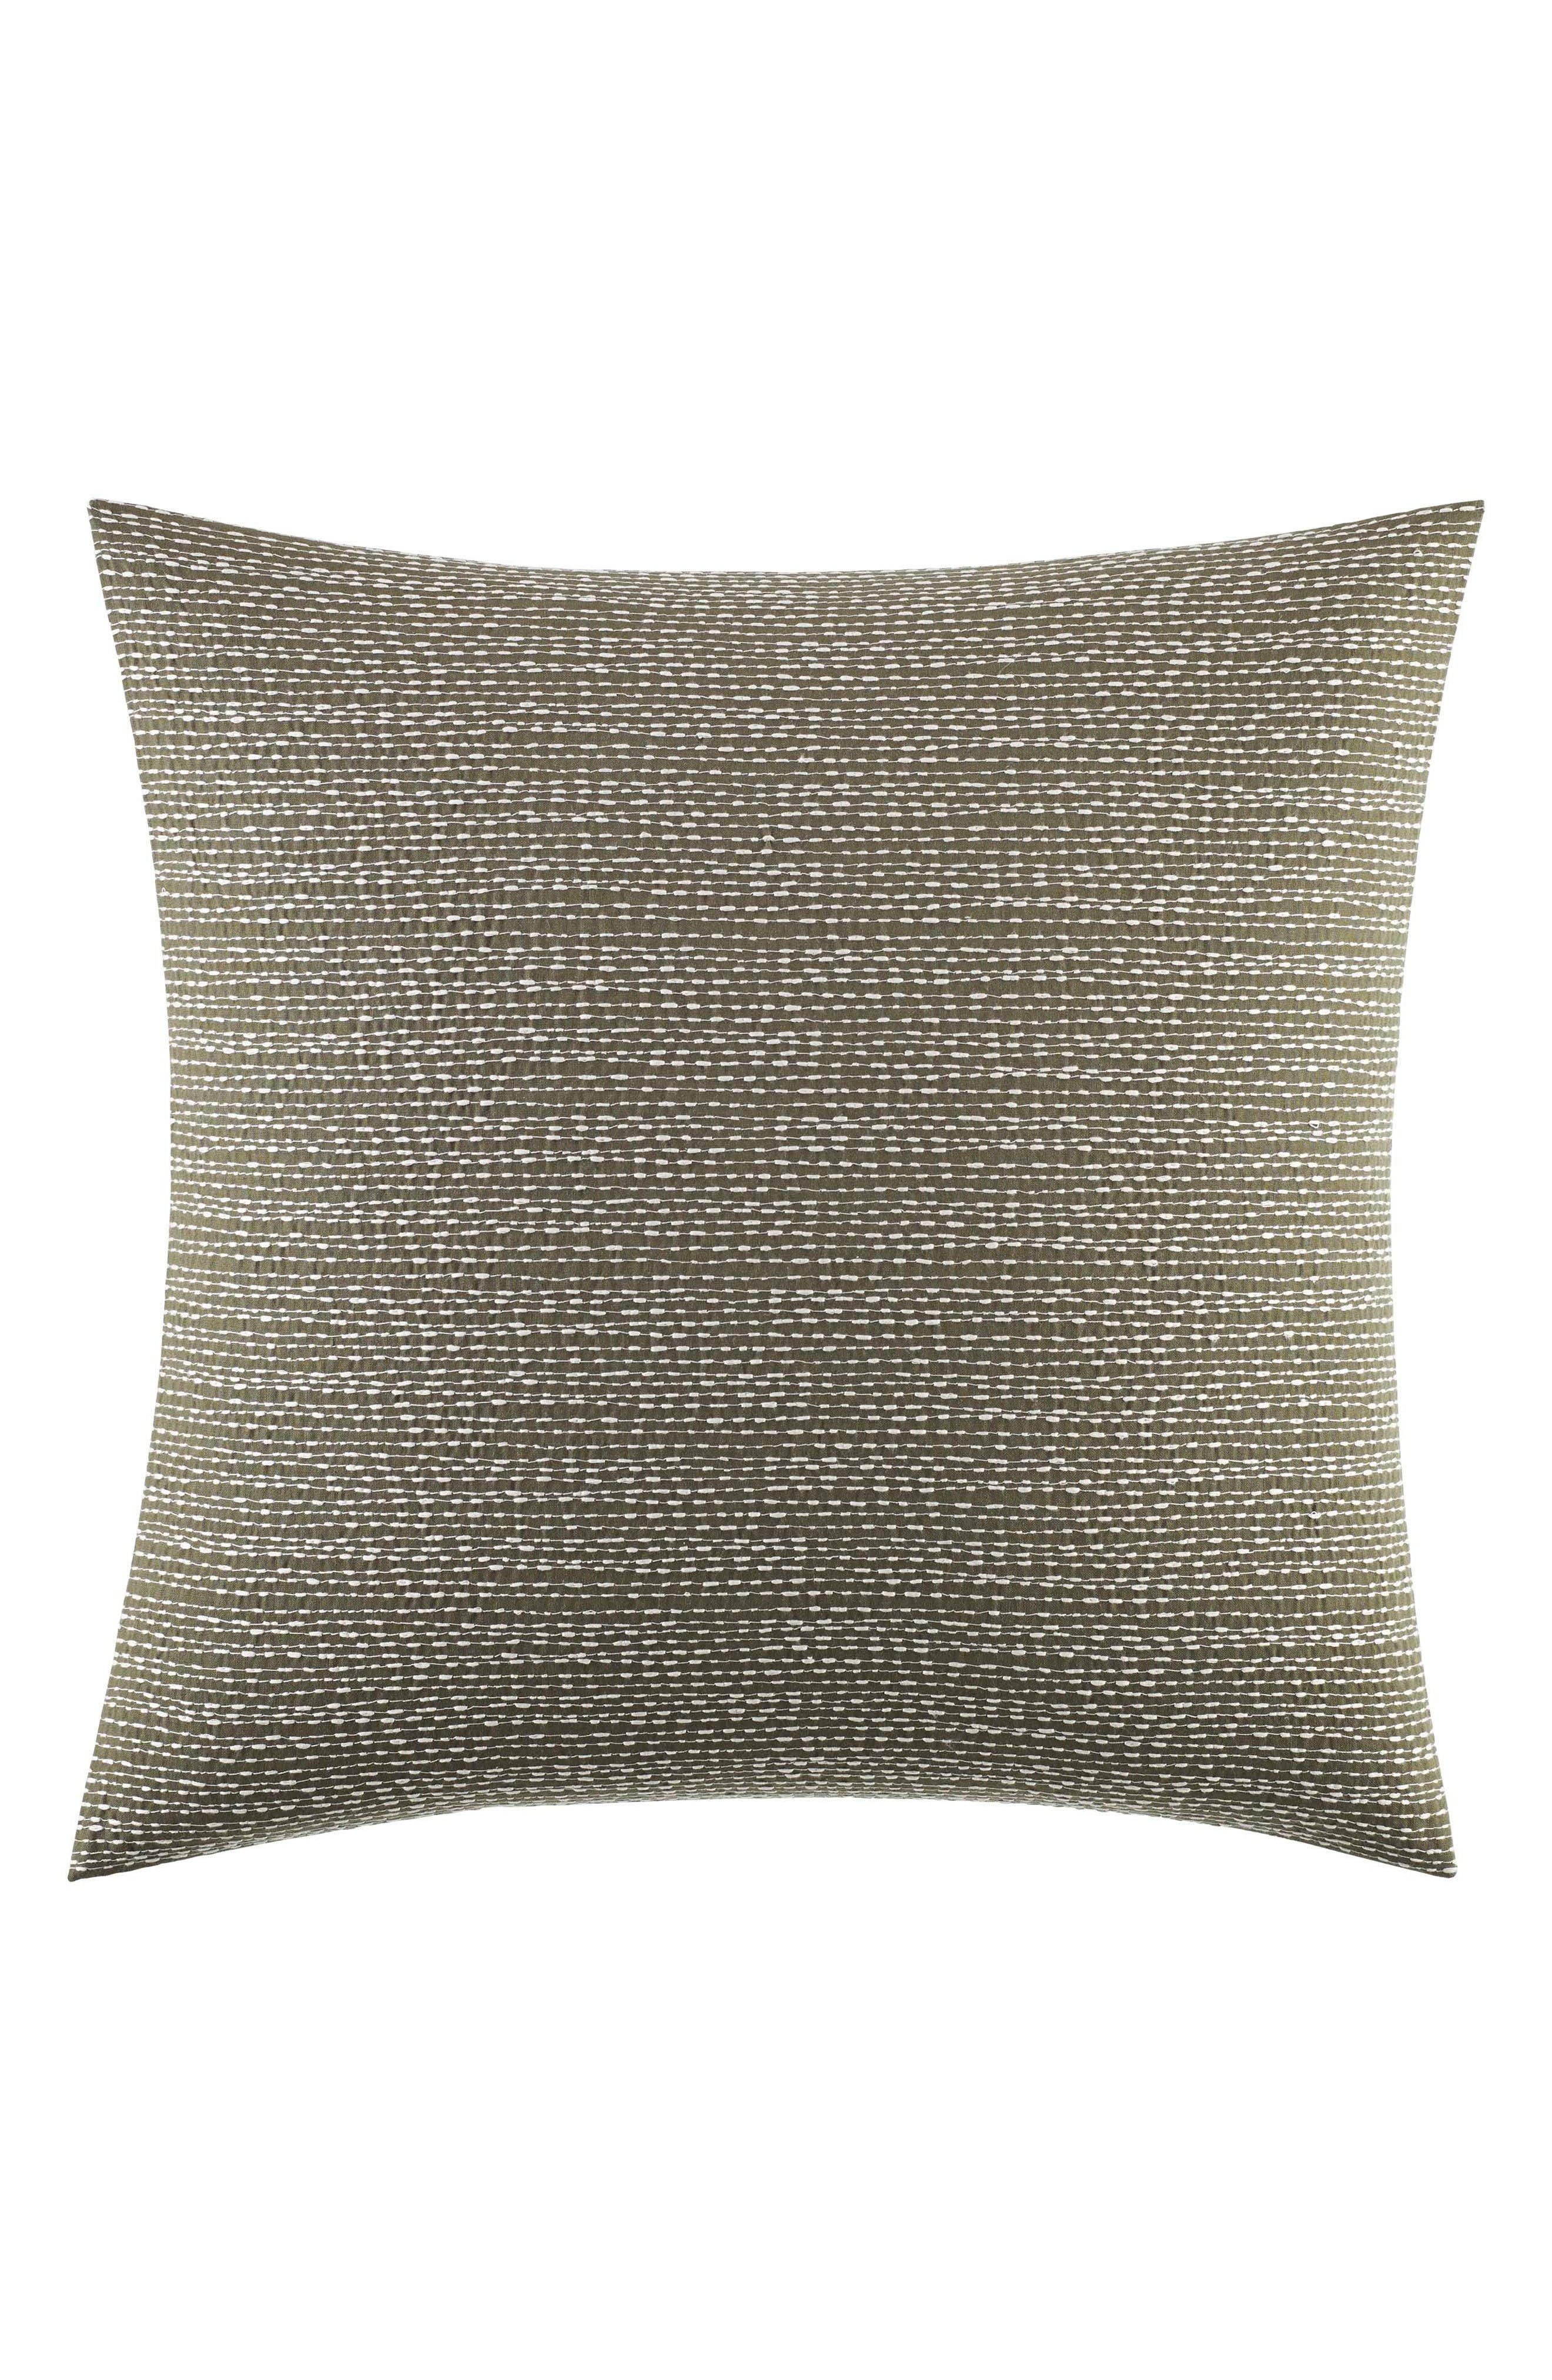 Dragonfly Accent Pillow,                         Main,                         color, Grass Green